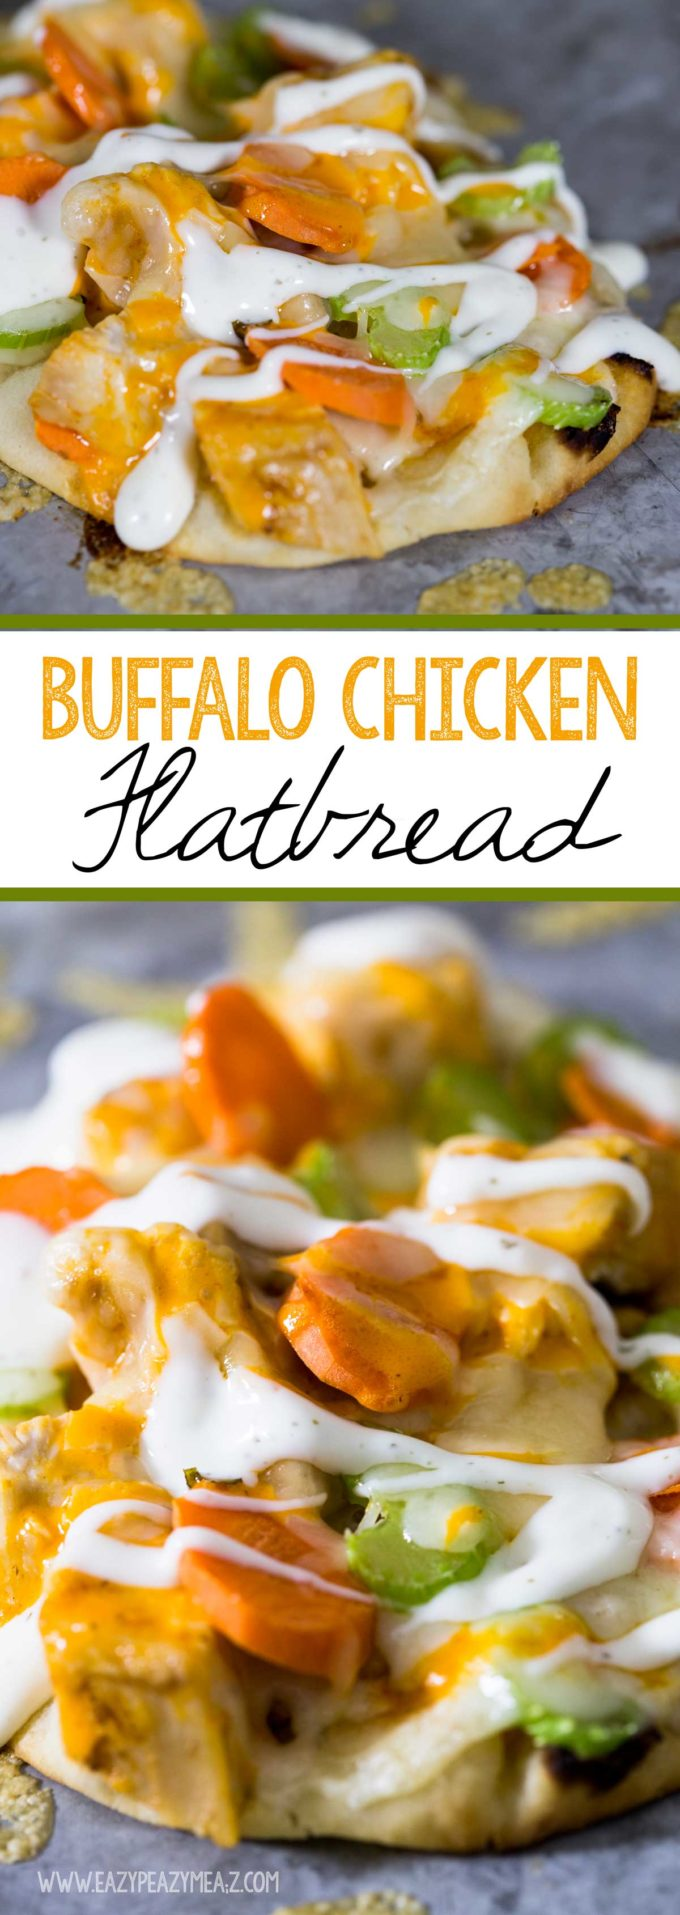 pin-buffalo-chicken-flatbread